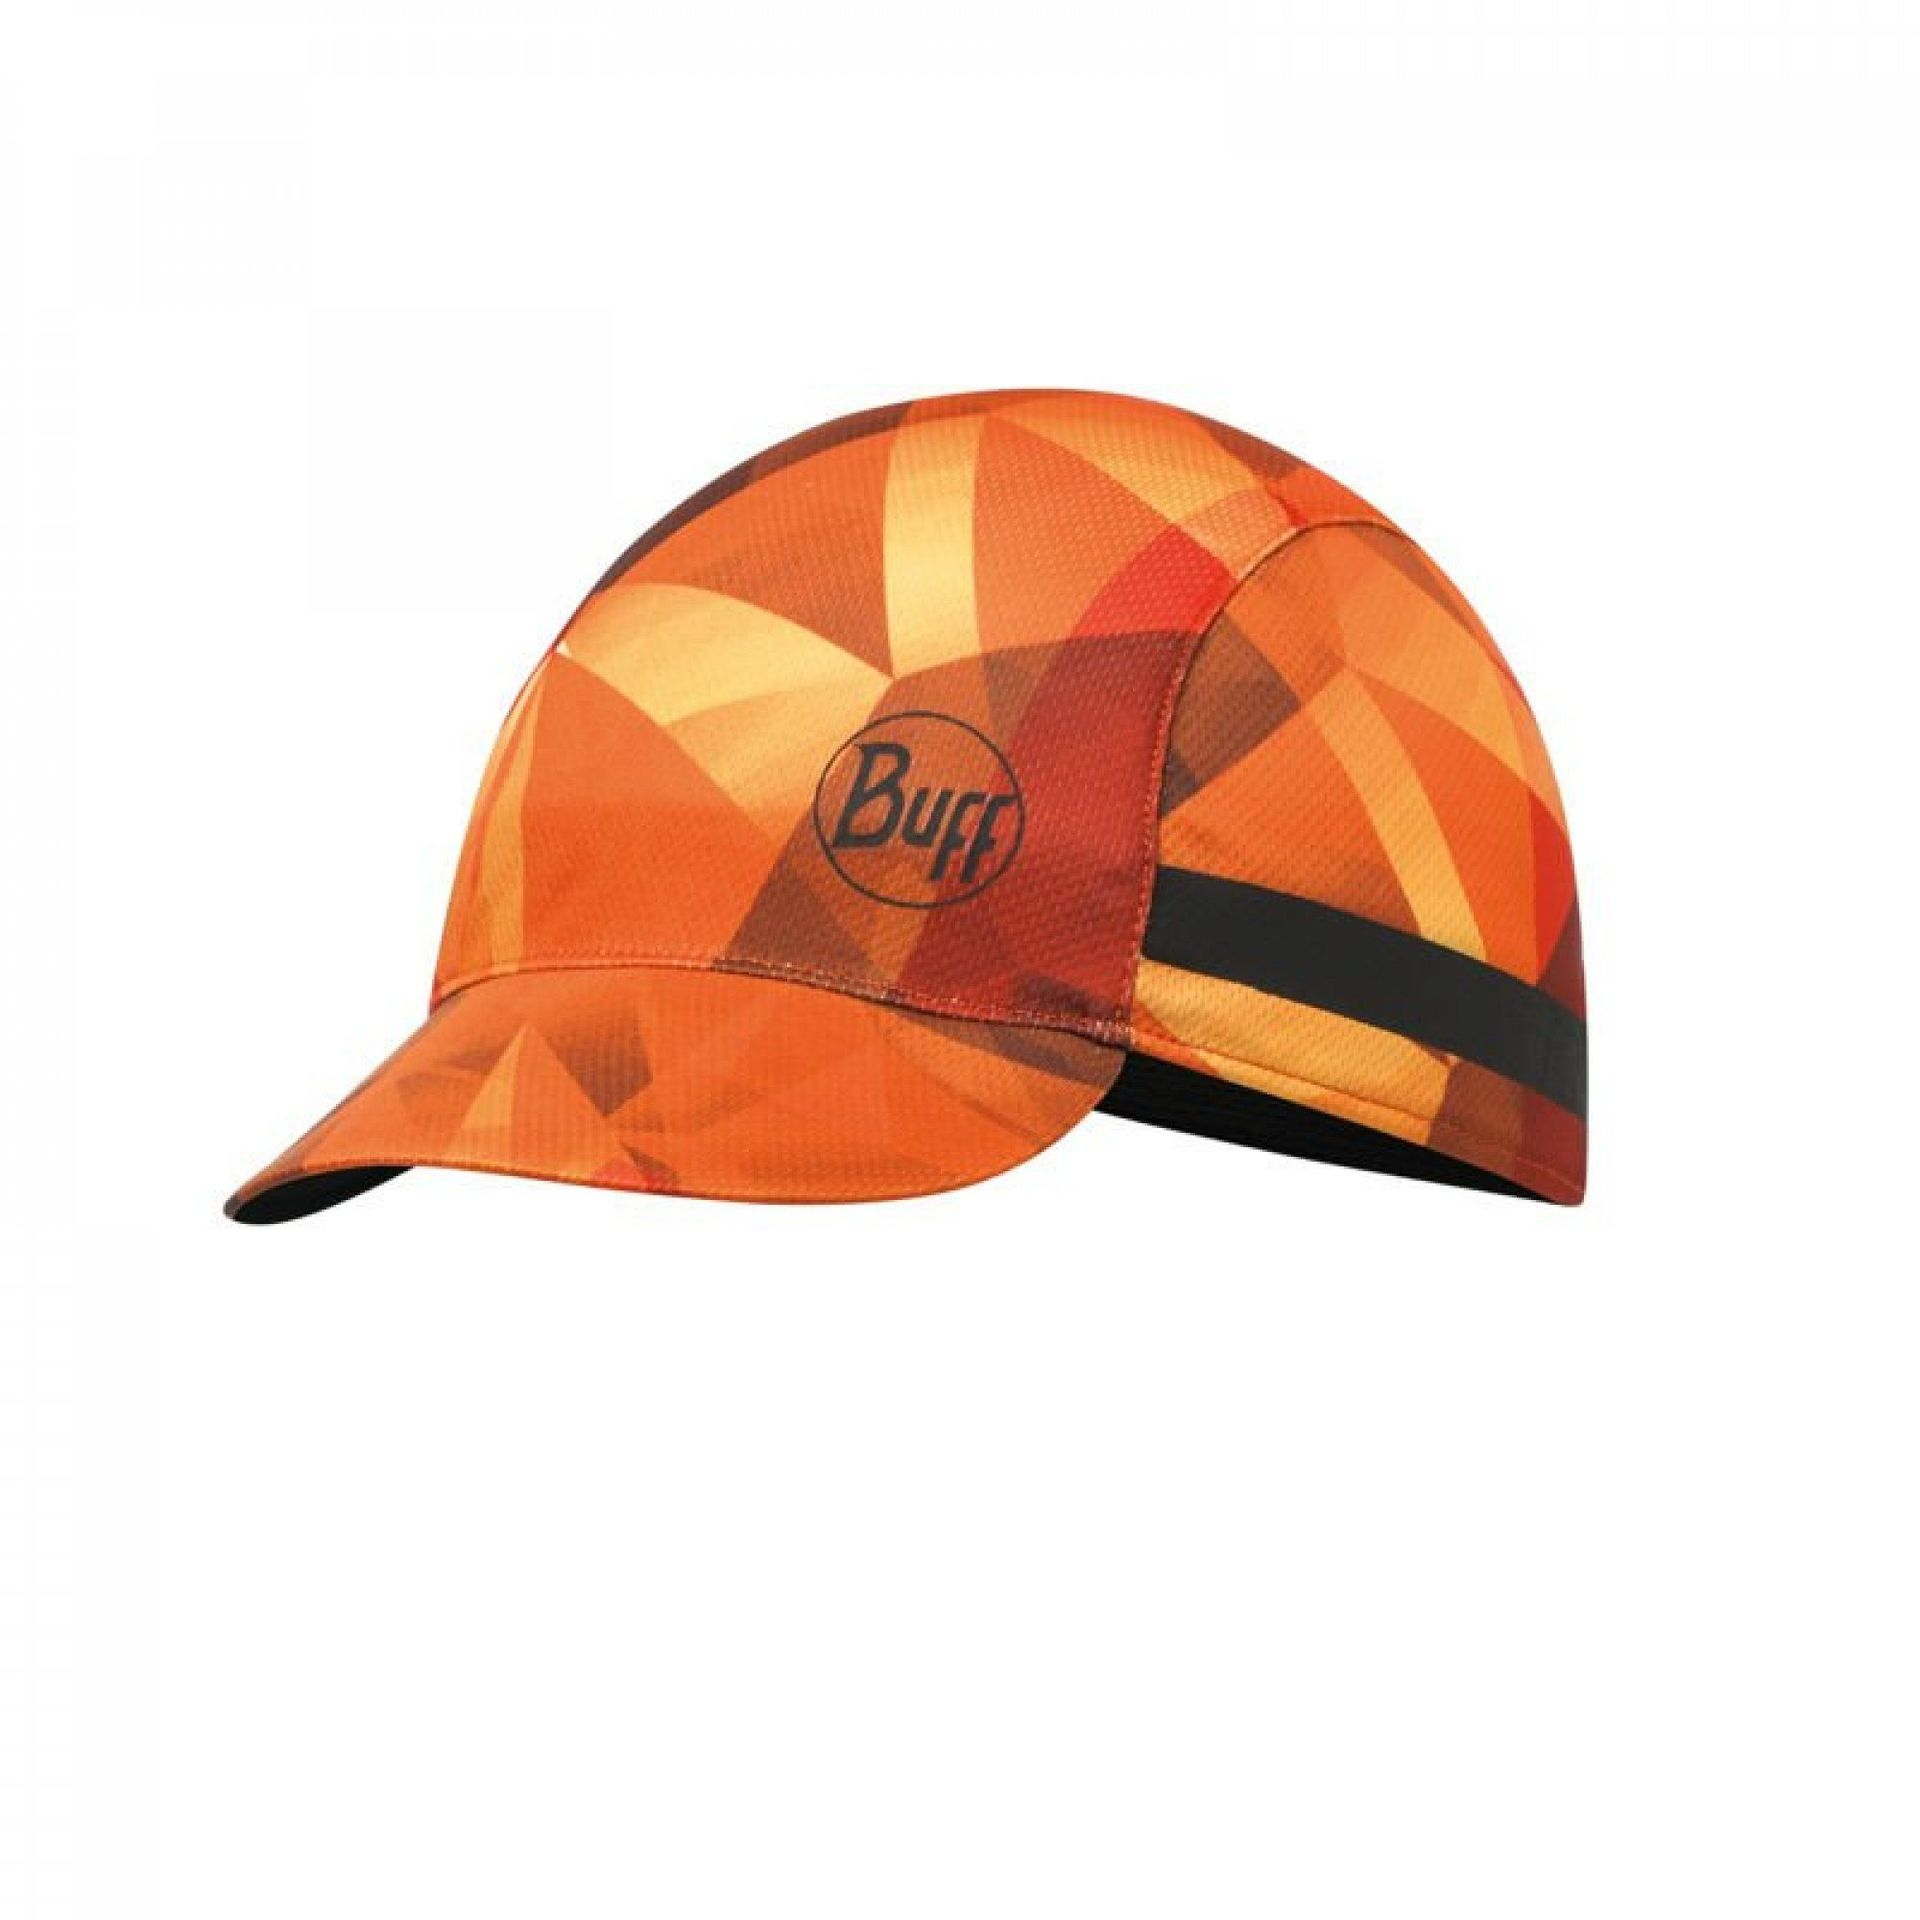 BIKE CAP ORANGE 1